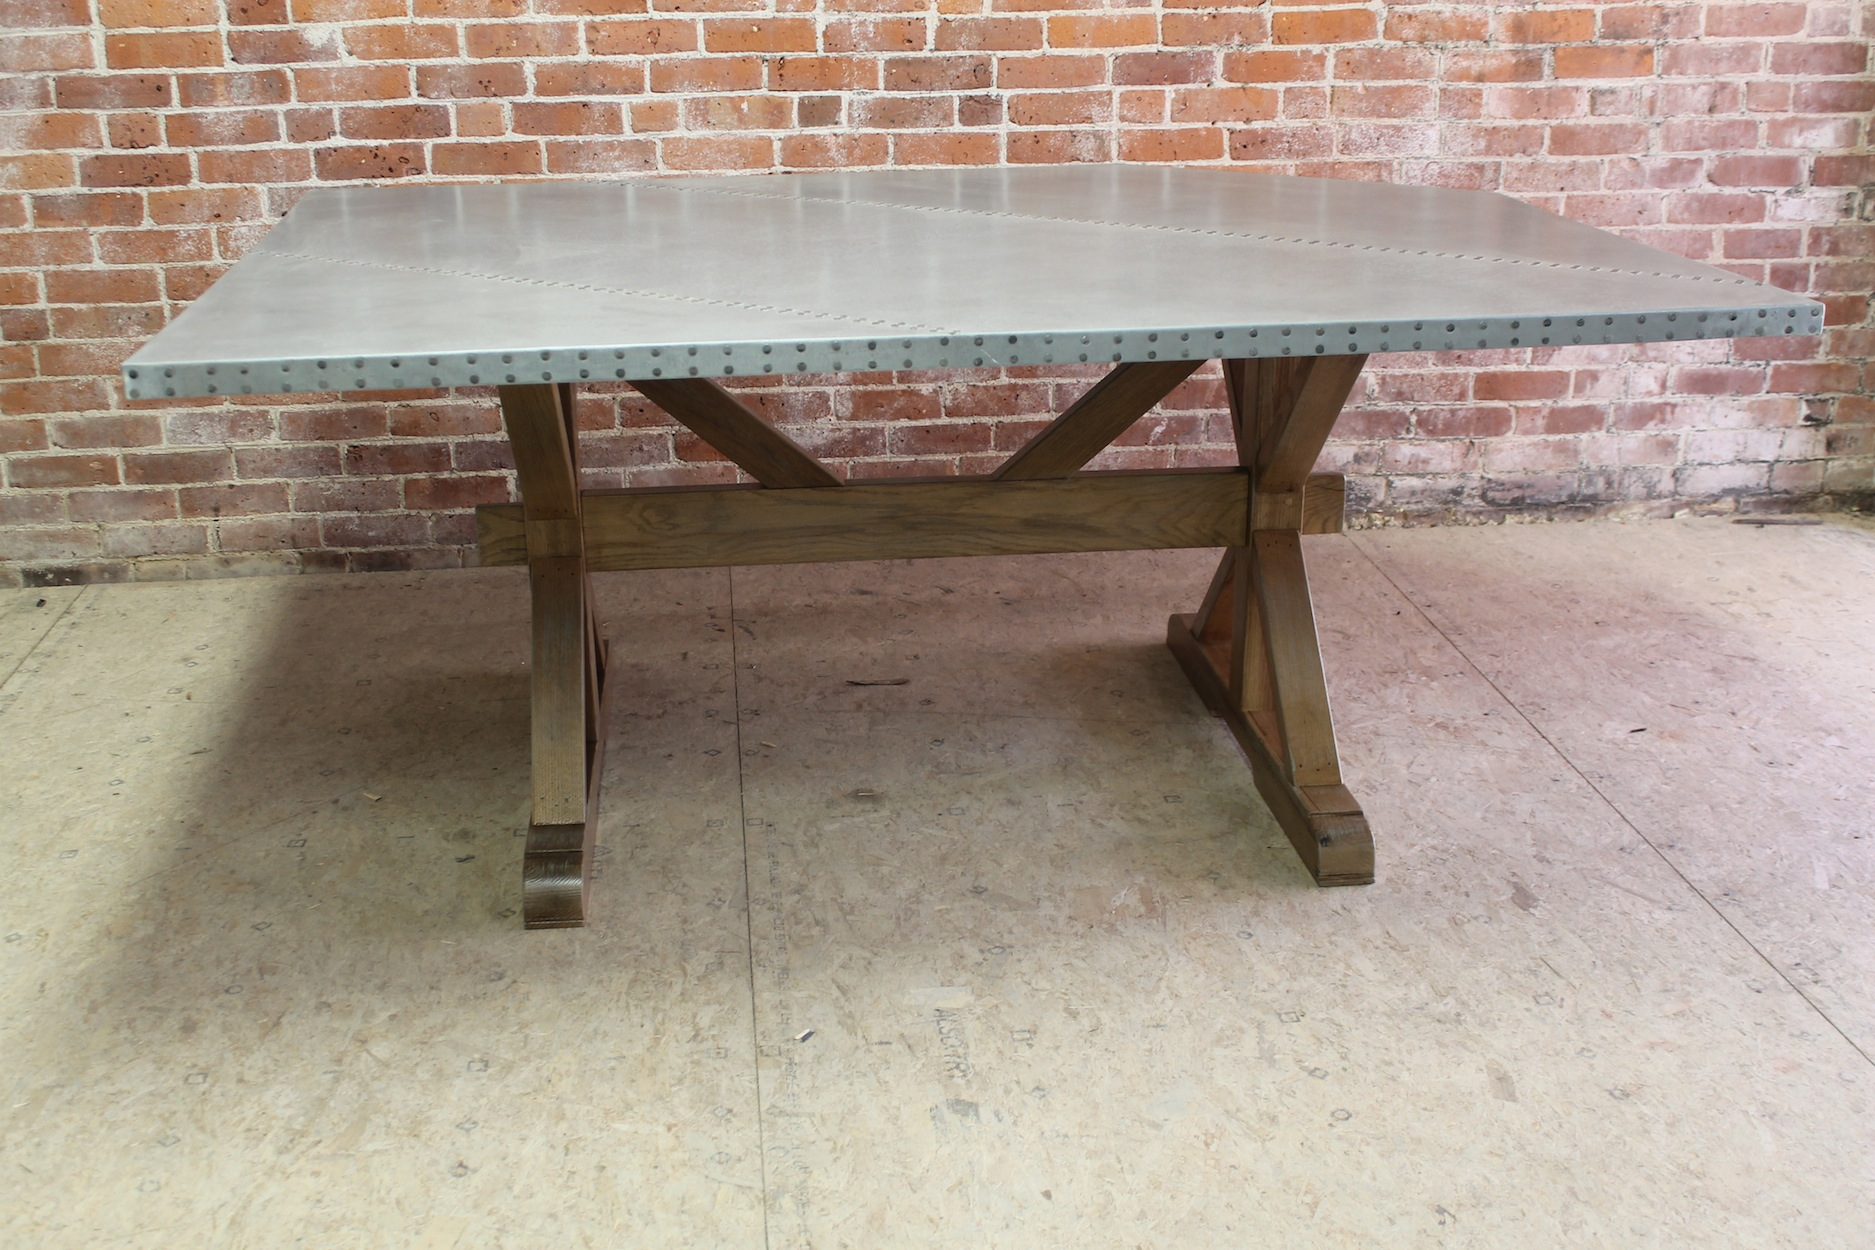 metal kitchen cabinets for sale shades zinc top farm table with x-trestle base - ecustomfinishes